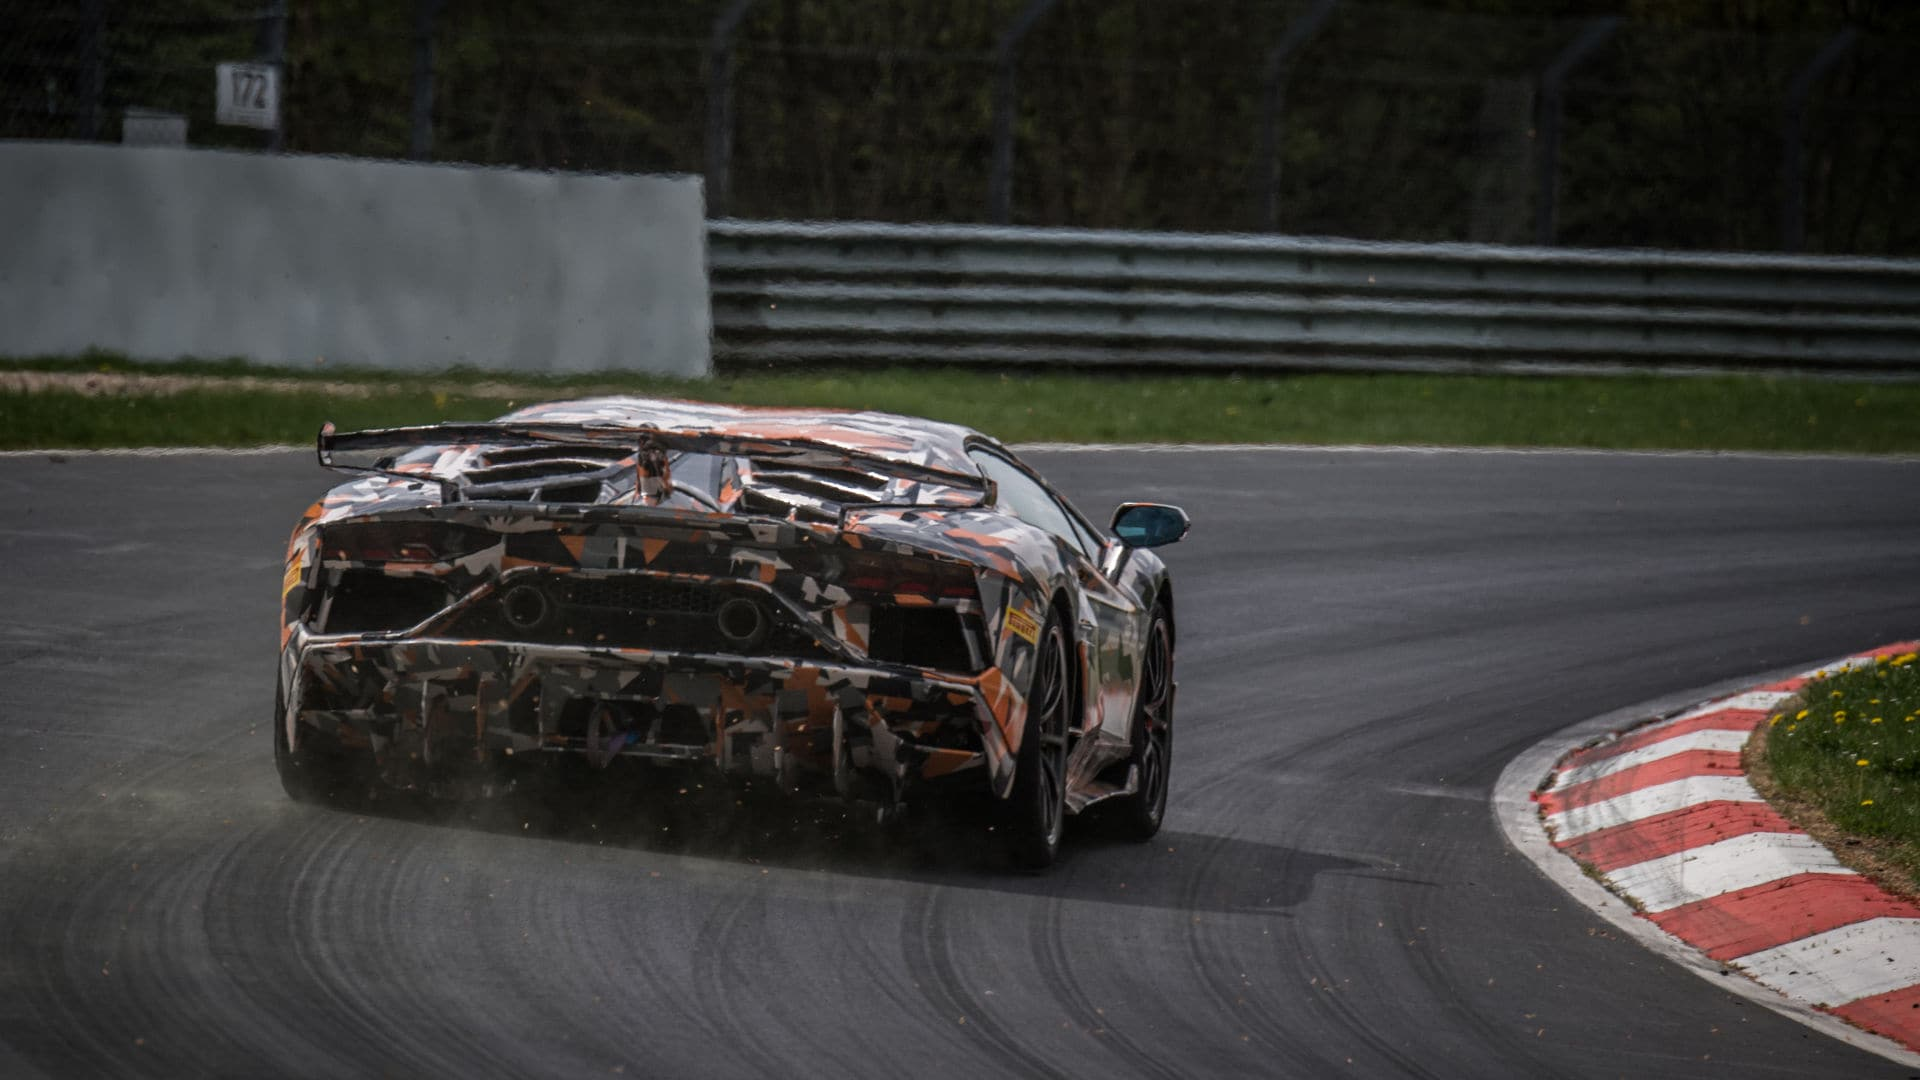 Aventador Svj Sets Nurburgring Lap Record Ahead Of Its Unveiling